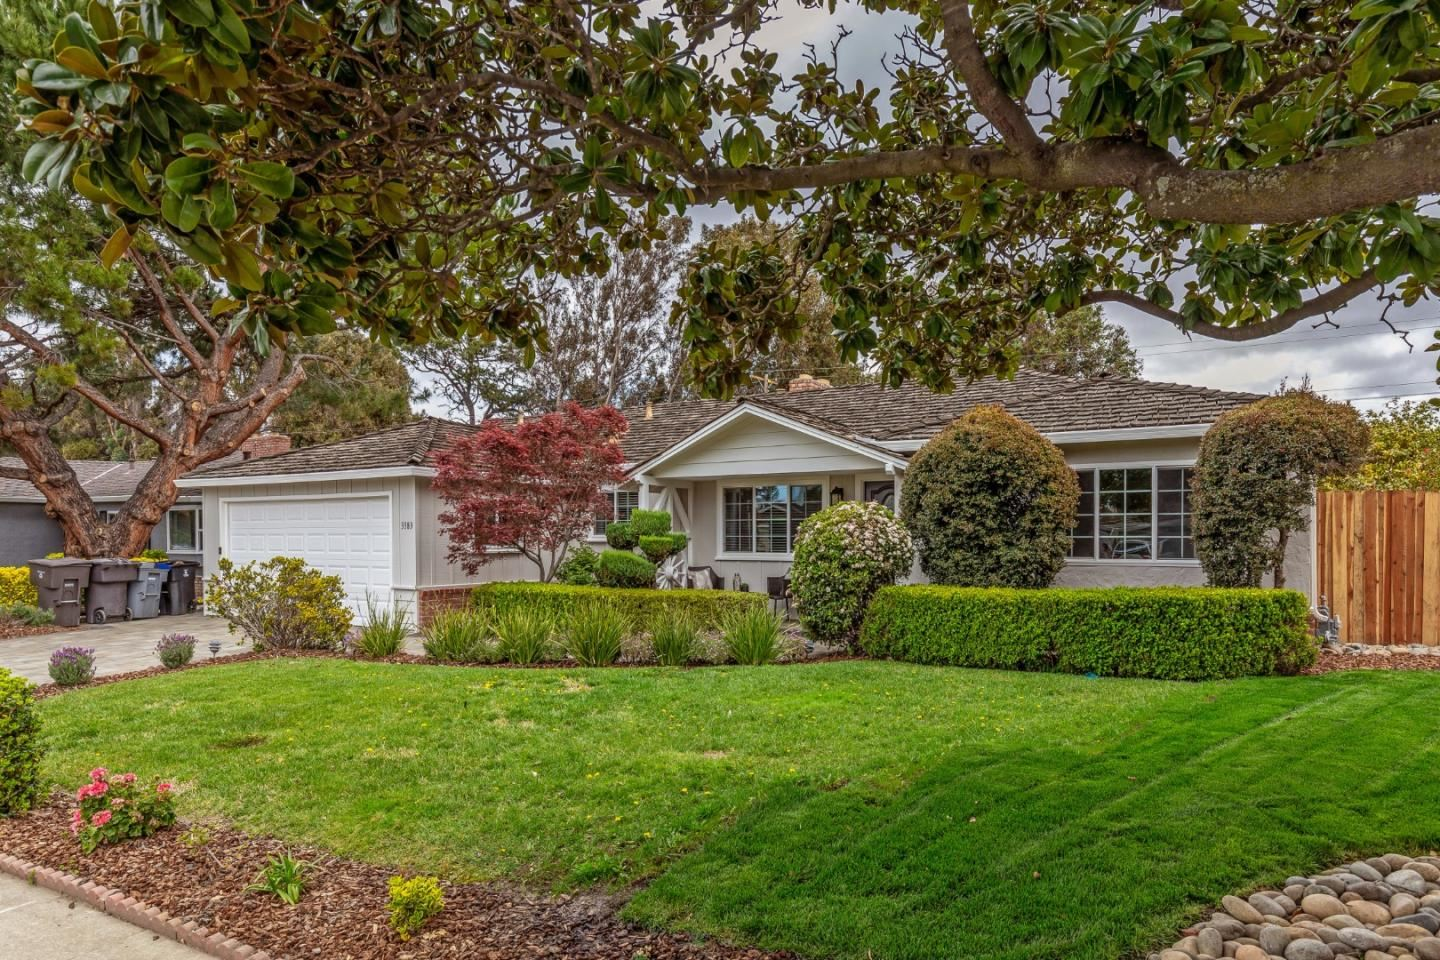 Photo for 3383 Lubich DR, MOUNTAIN VIEW, CA 94040 (MLS # ML81836177)